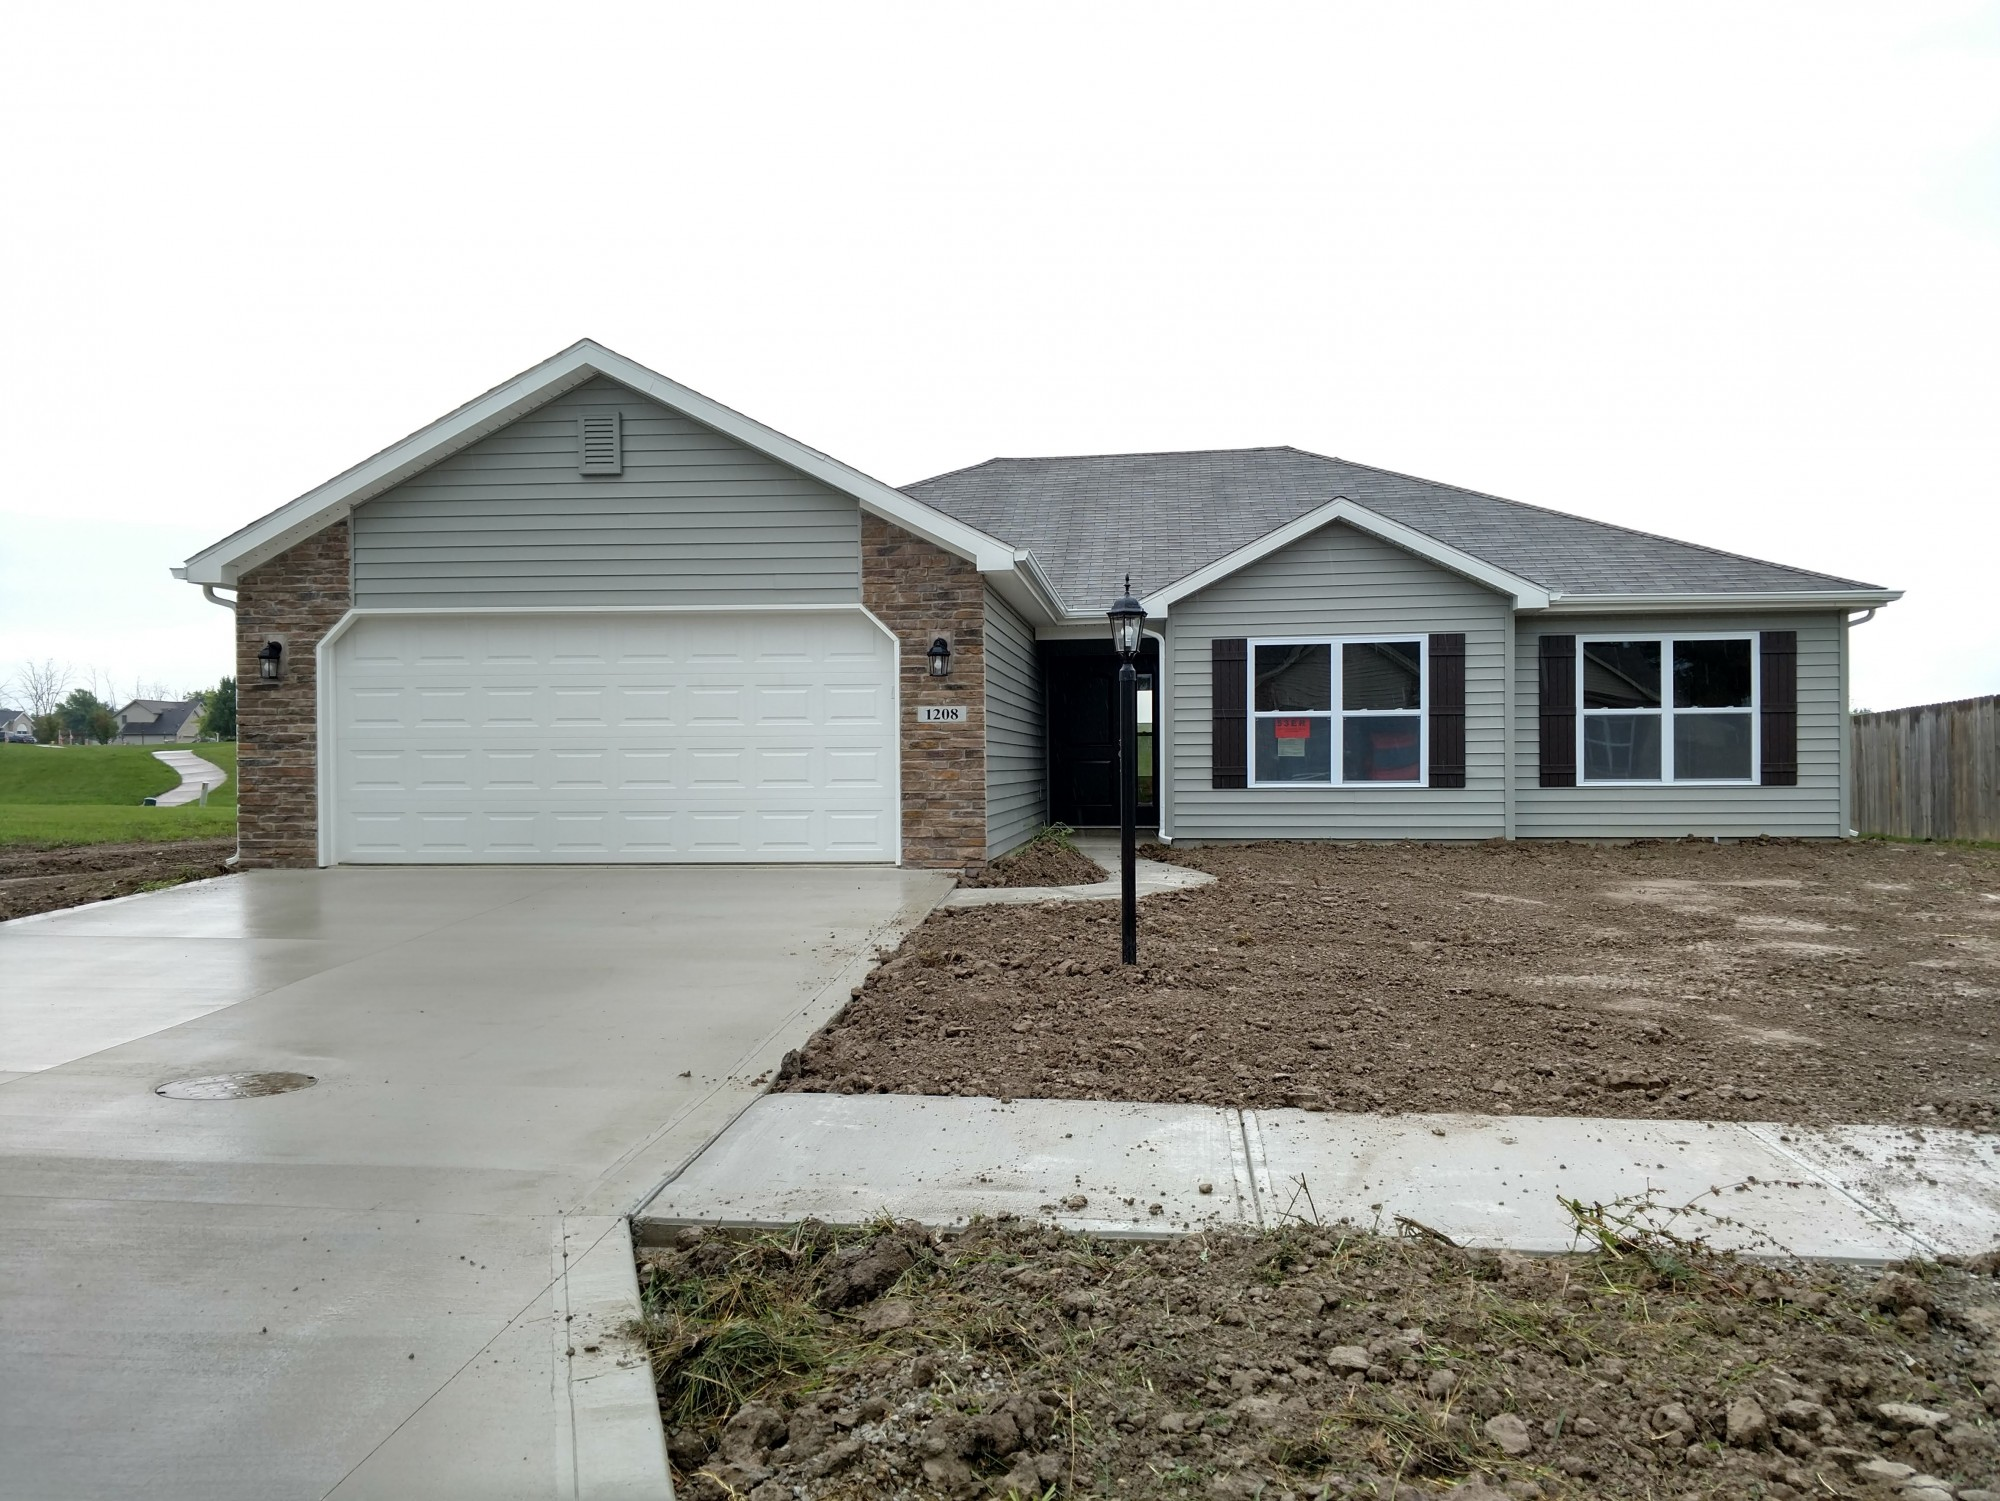 1208 East Ridge Dr., Decatur, Indiana